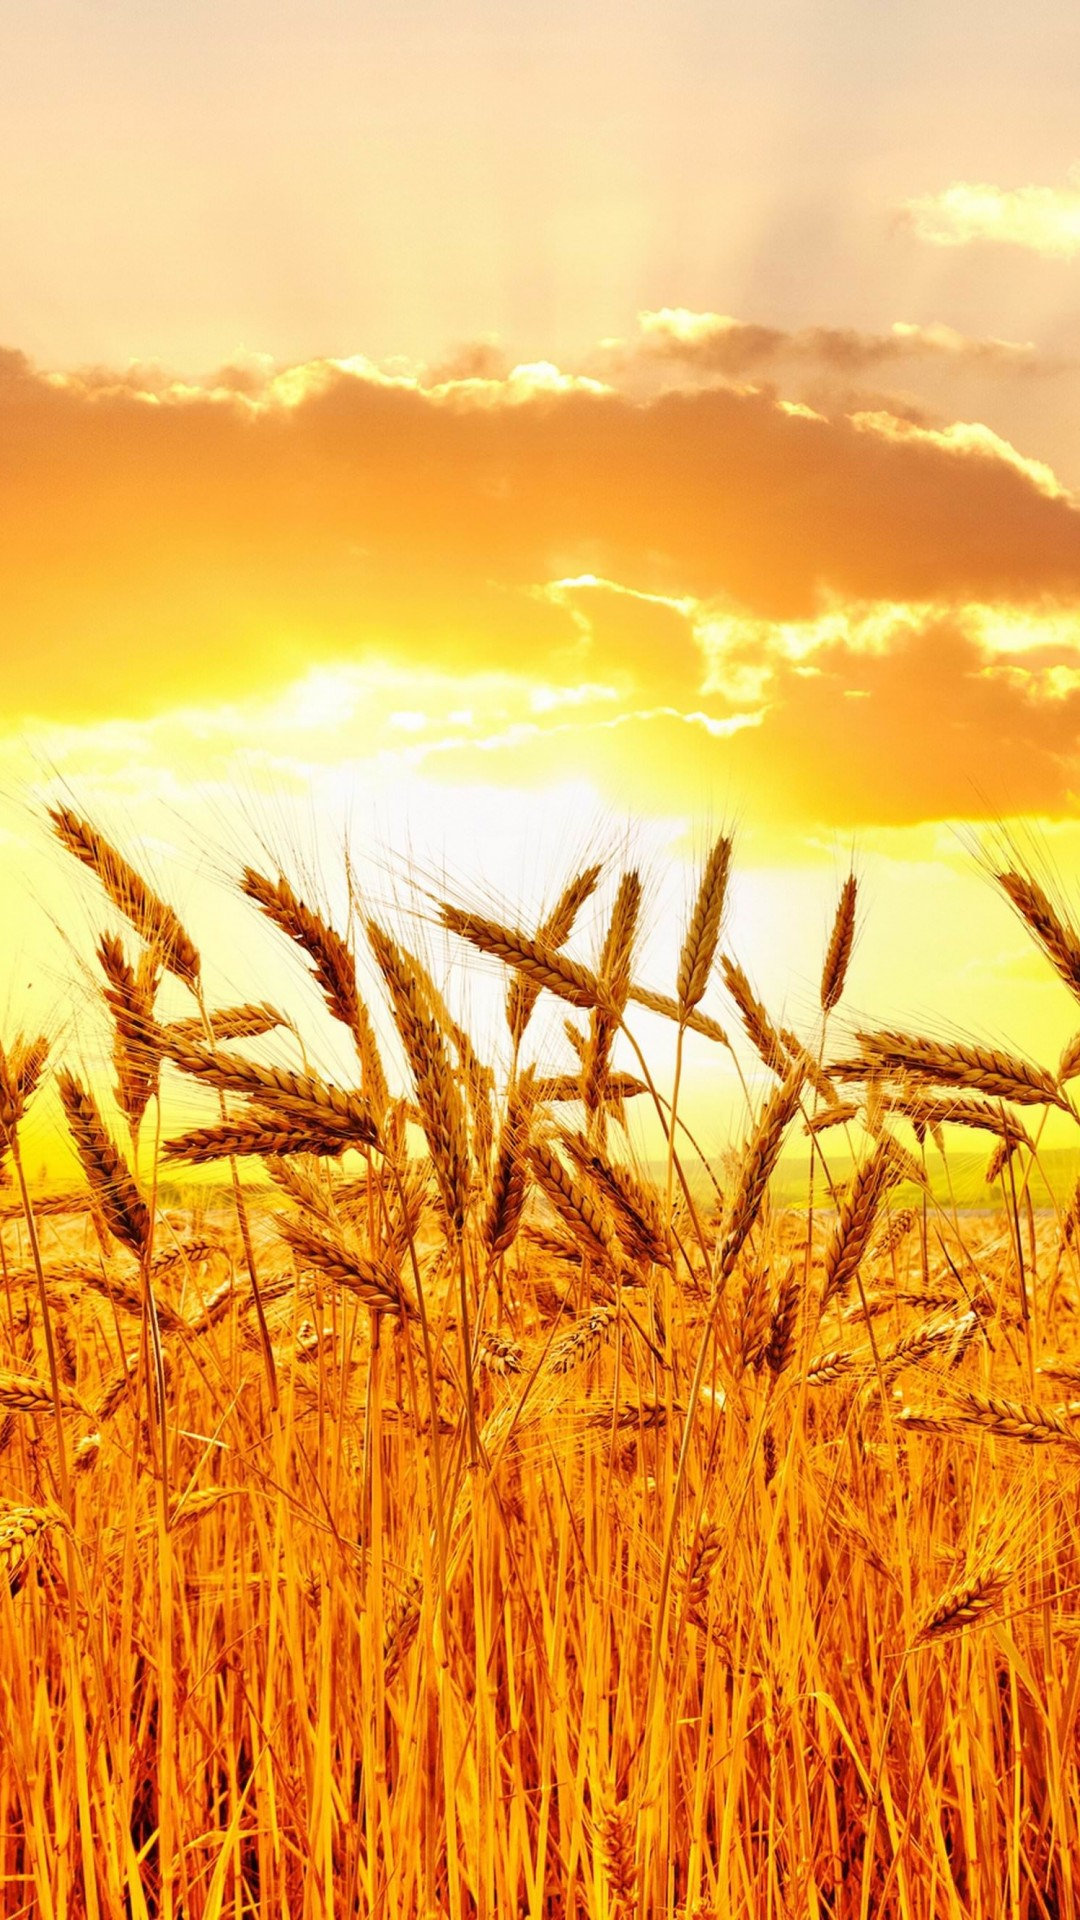 Golden Wheat Field At Sunset Wallpaper for Google Nexus 5X